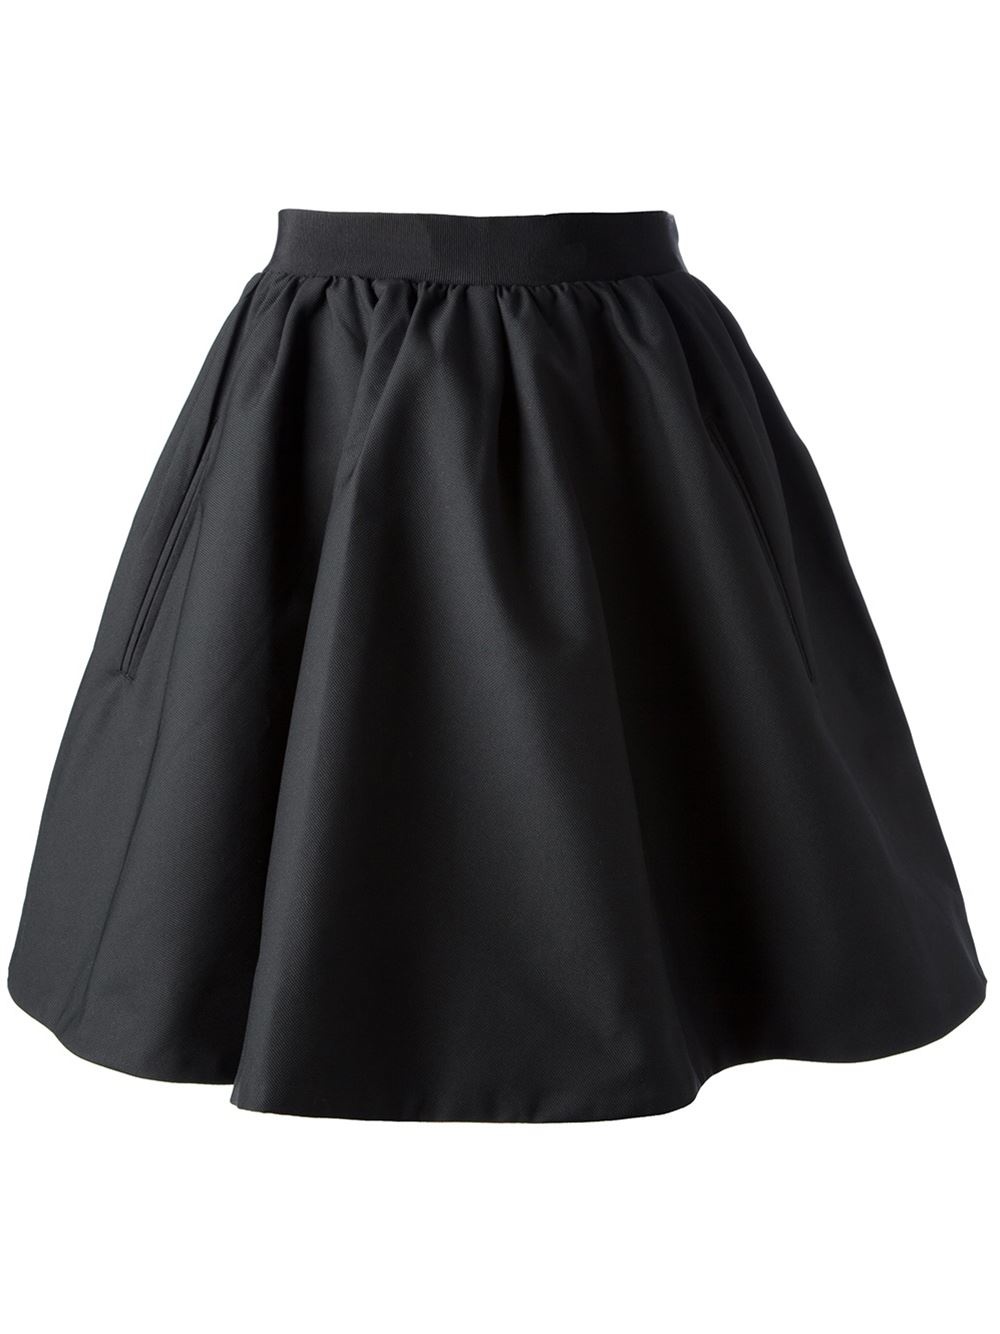 Acne Studios 'romantic' Skirt - Start - Farfetch.com